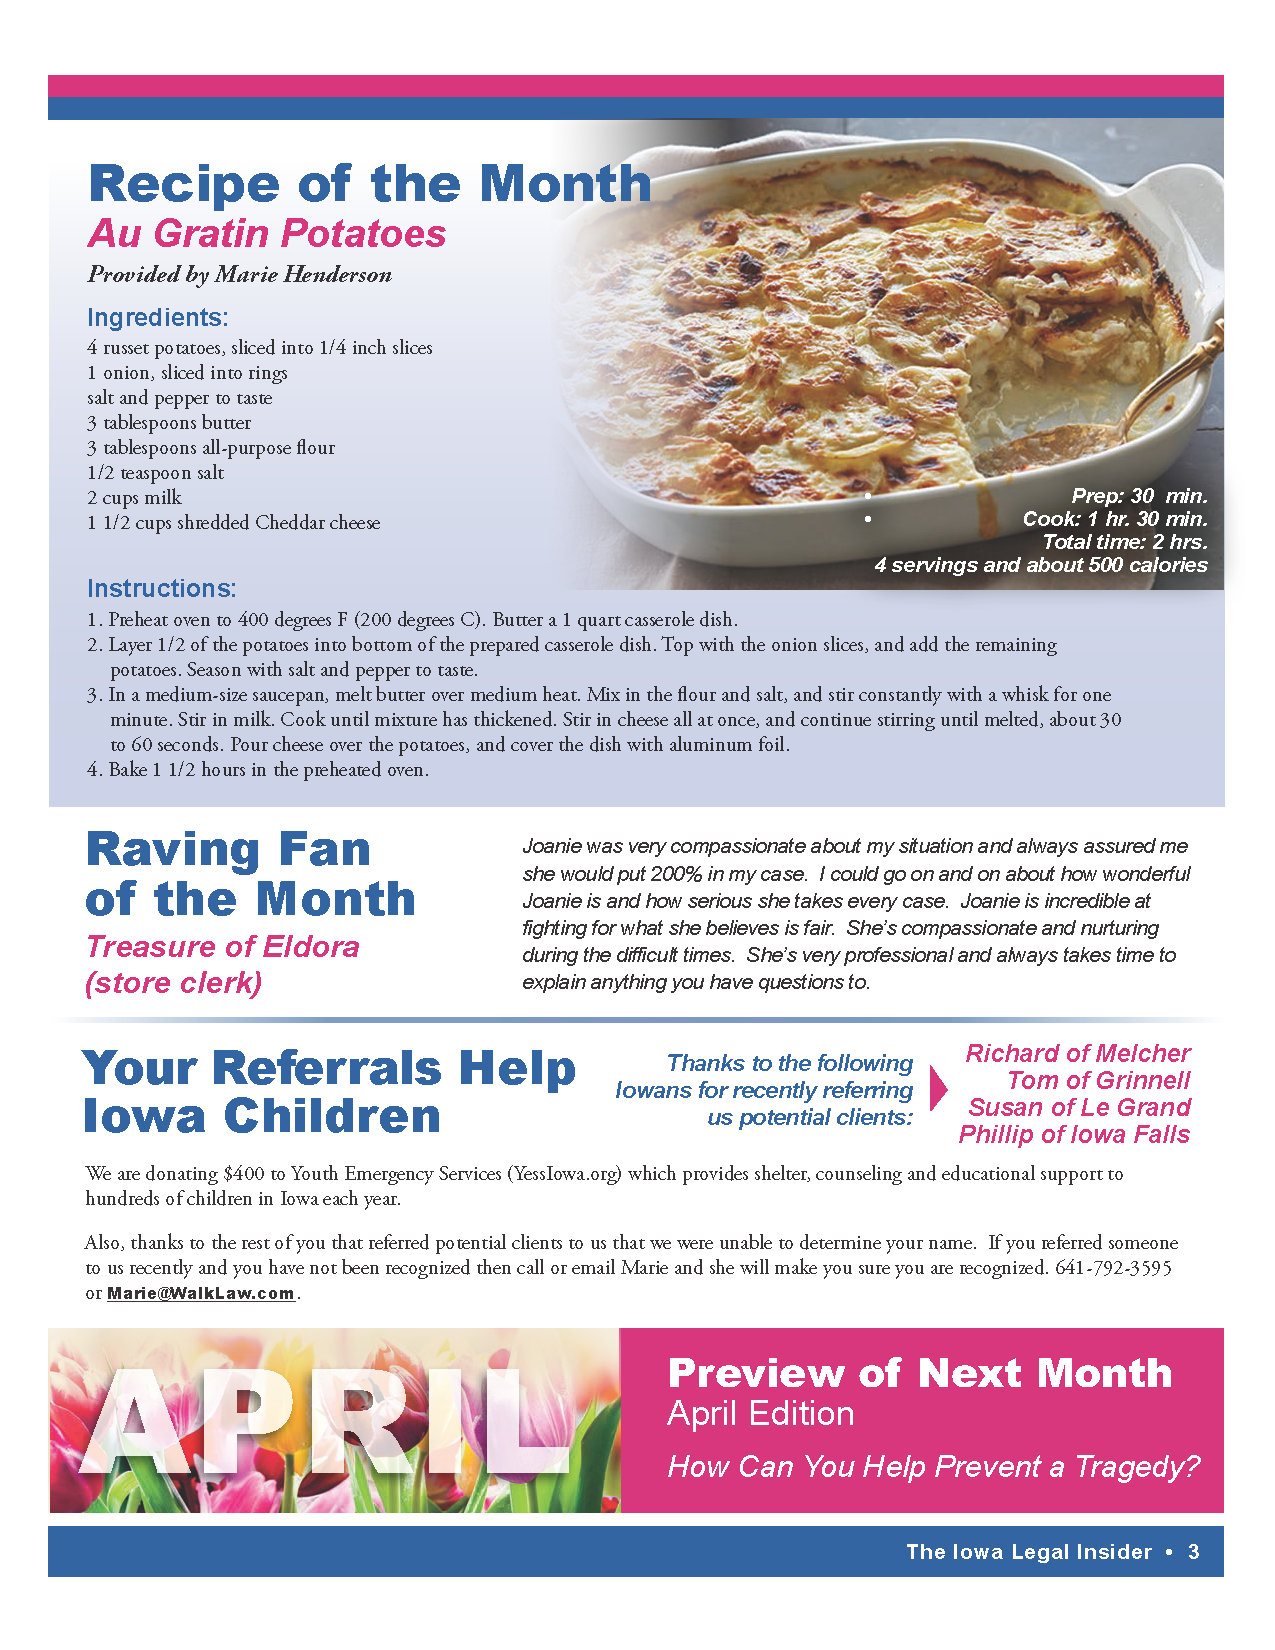 recipe of the month and reviews from clients